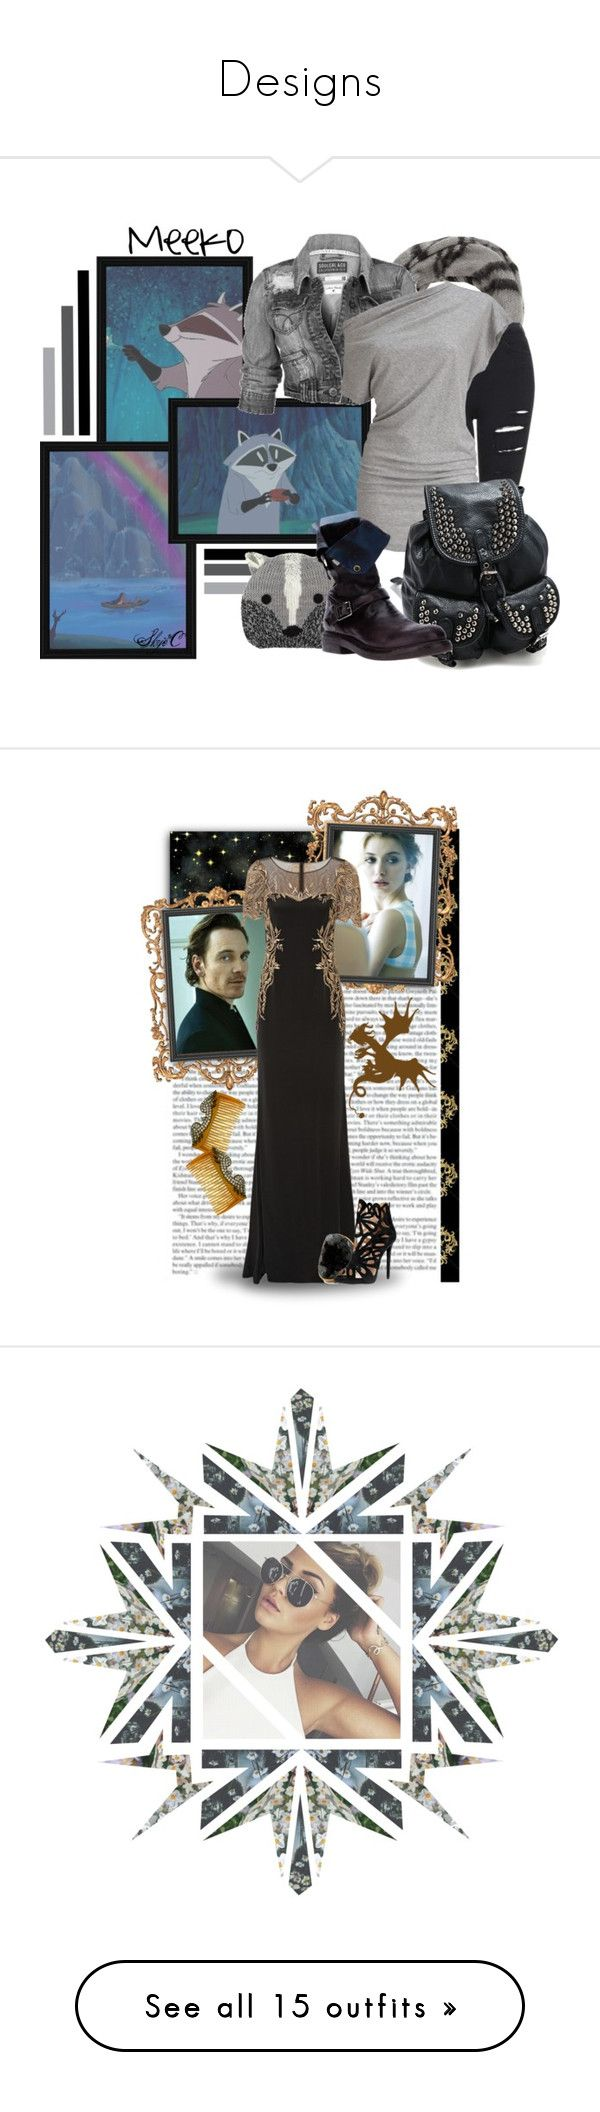 """Designs"" by tinkerbell06 ❤ liked on Polyvore featuring Wooden Ships, Topshop, Bobi, Accessorize, Alberto Fasciani, battleofthedisneyfashions, Notte by Marchesa, art, Once Upon a Time and European Heritage"